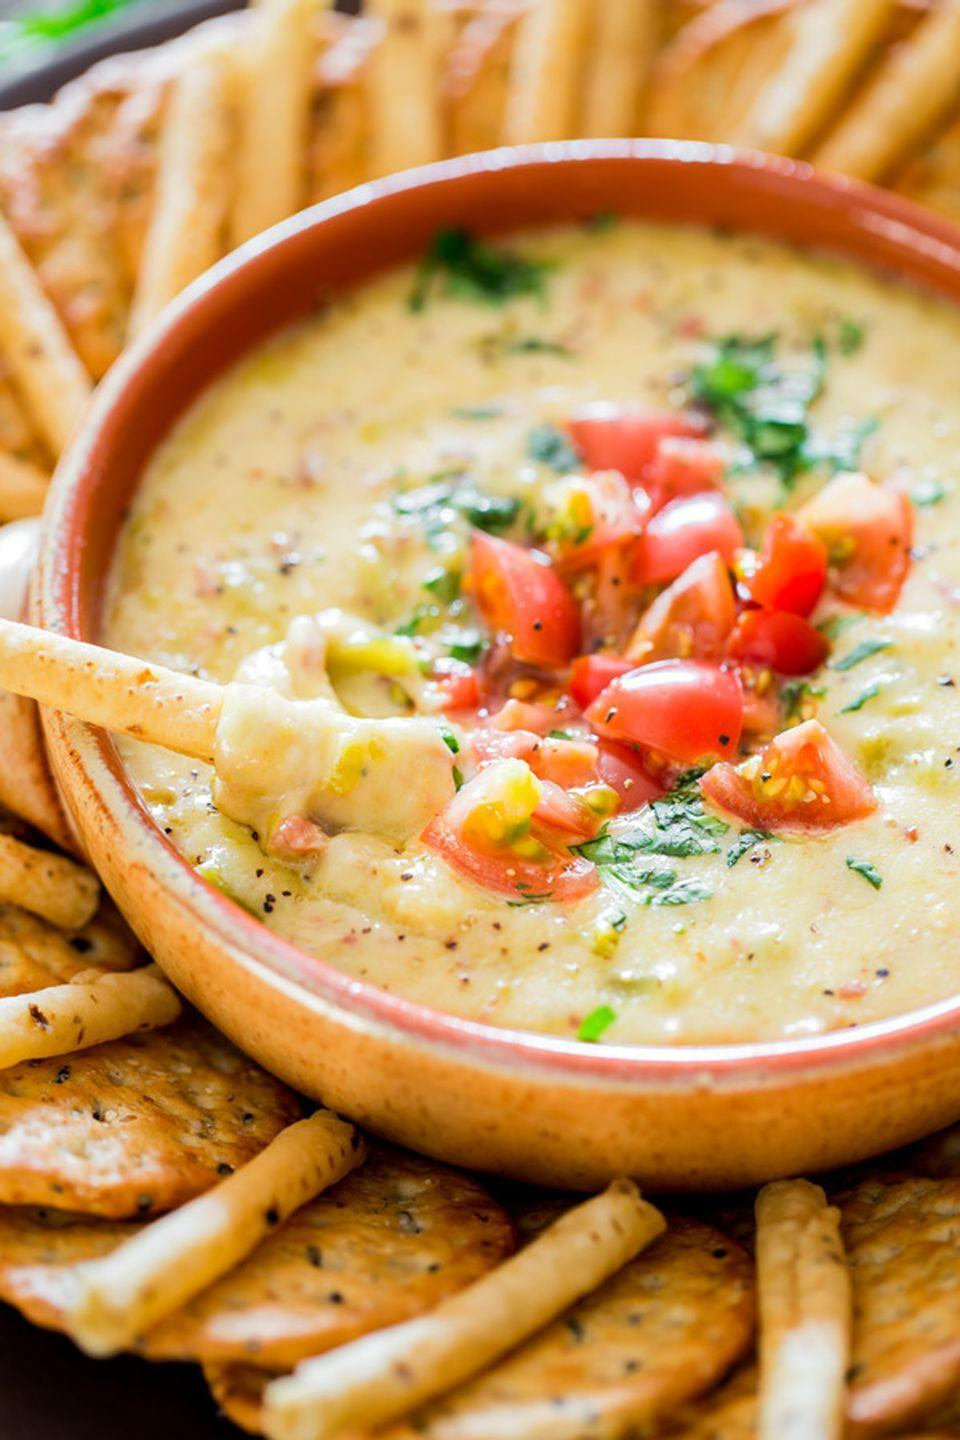 "<p>Trust us: You're going to be scraping the bottom of the bowl for one last bite of this dip.</p><p><strong>Get the recipe from <a href=""http://www.jocooks.com/main-courses/pork-main-courses/crockpot-bacon-queso-blanco-dip/"" rel=""nofollow noopener"" target=""_blank"" data-ylk=""slk:Jo Cooks"" class=""link rapid-noclick-resp"">Jo Cooks</a>.</strong></p>"